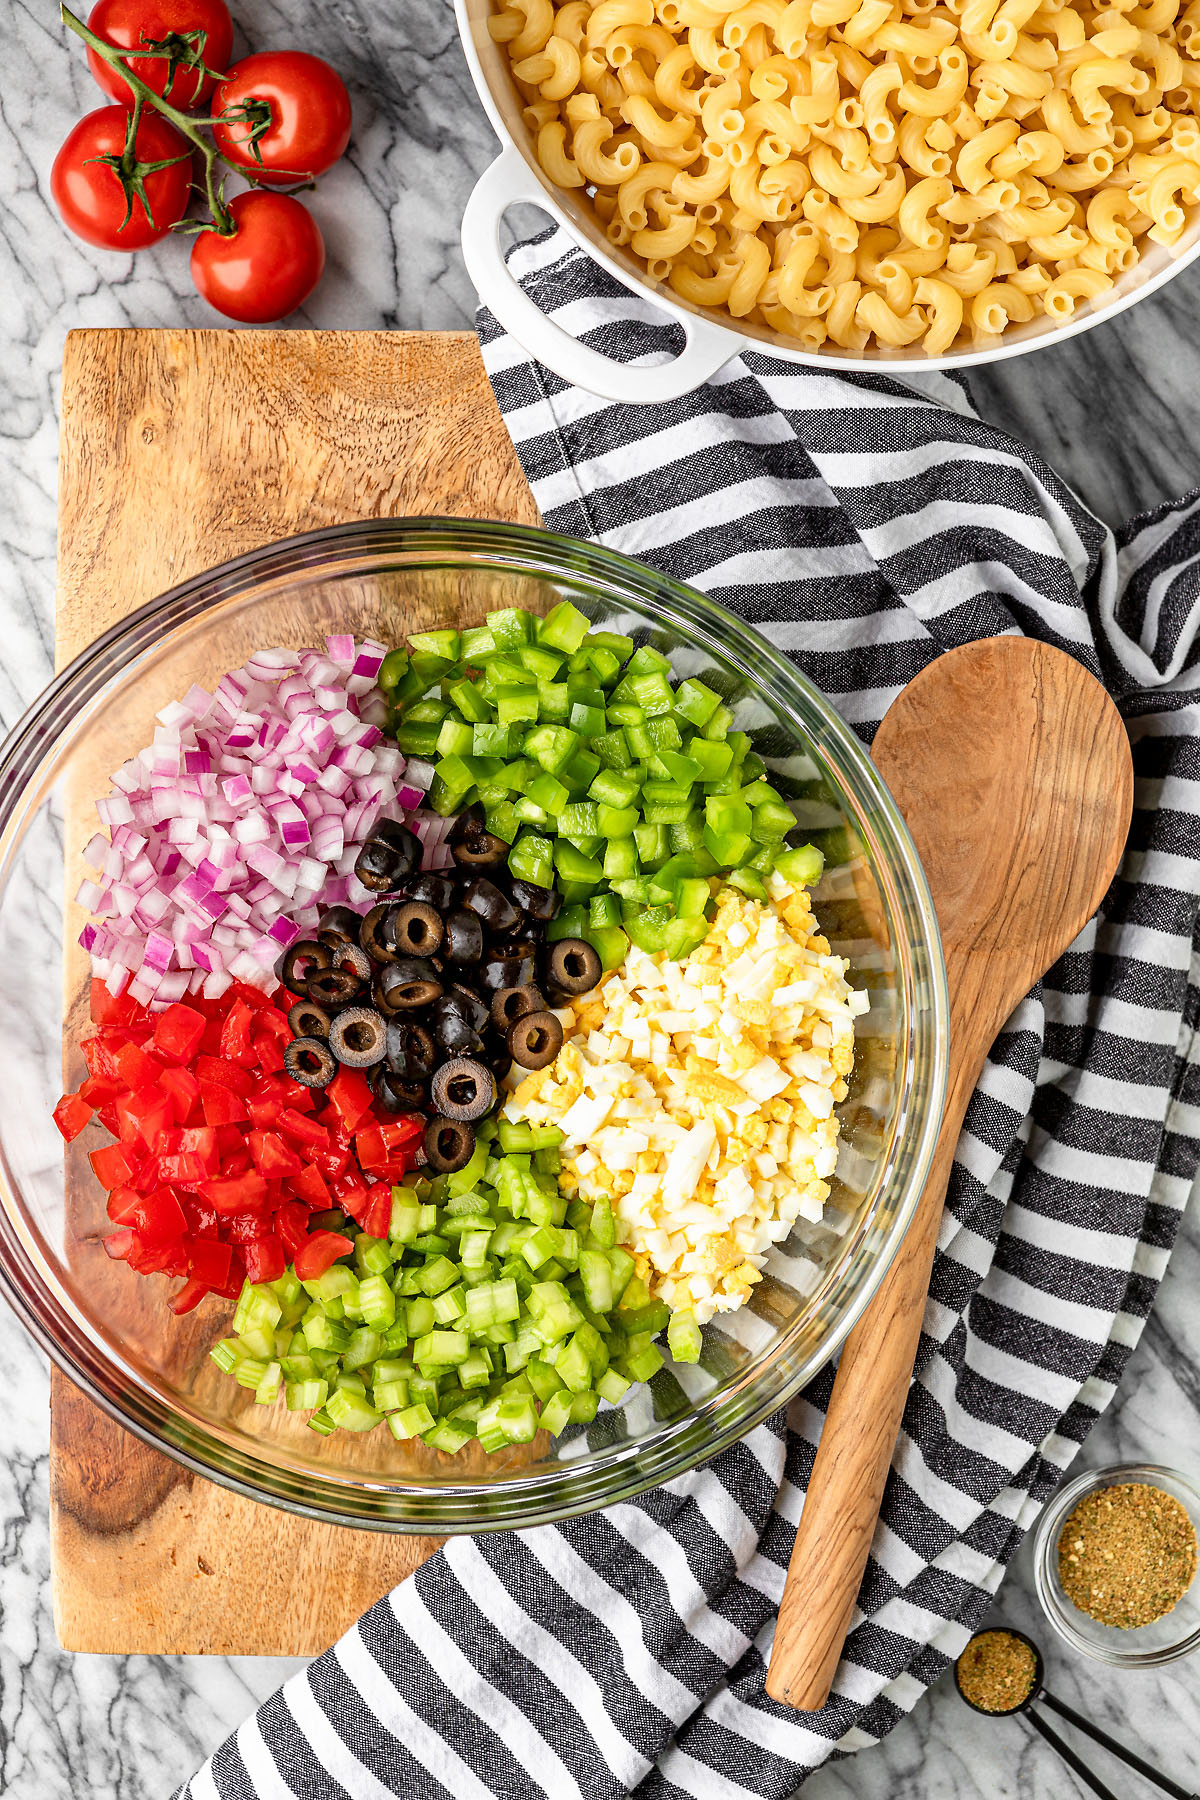 old fashioned macaroni salad ingredients in a glass bowl with a black and white kitchen towel